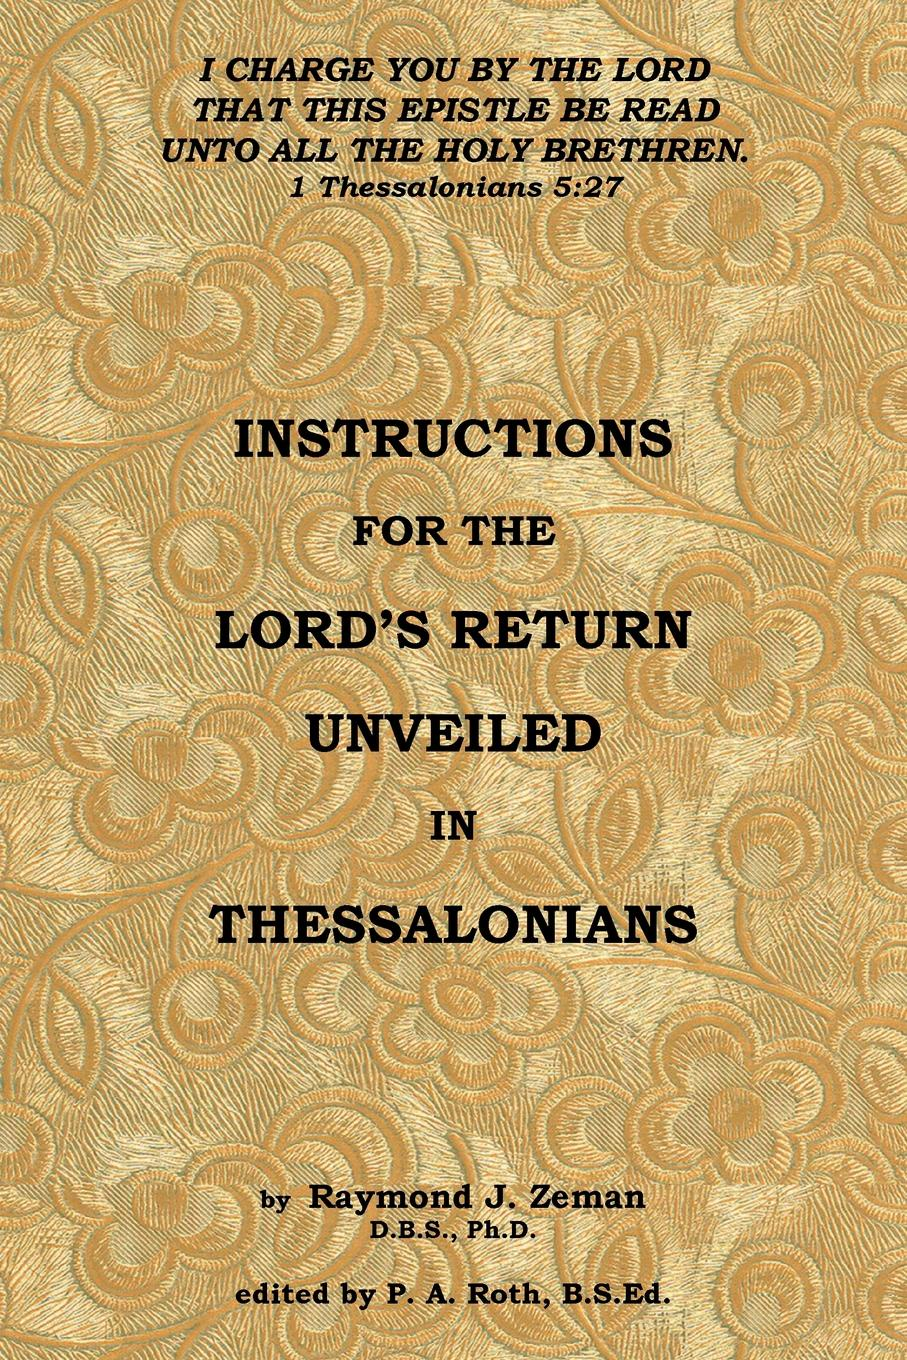 D.B.S.Ph.D. Raymond J. Zeman Instructions For the Lord's Return Unveiled in Thessalonians raymond j zeman d b s ph d christian faith unveiled in the epistle of james